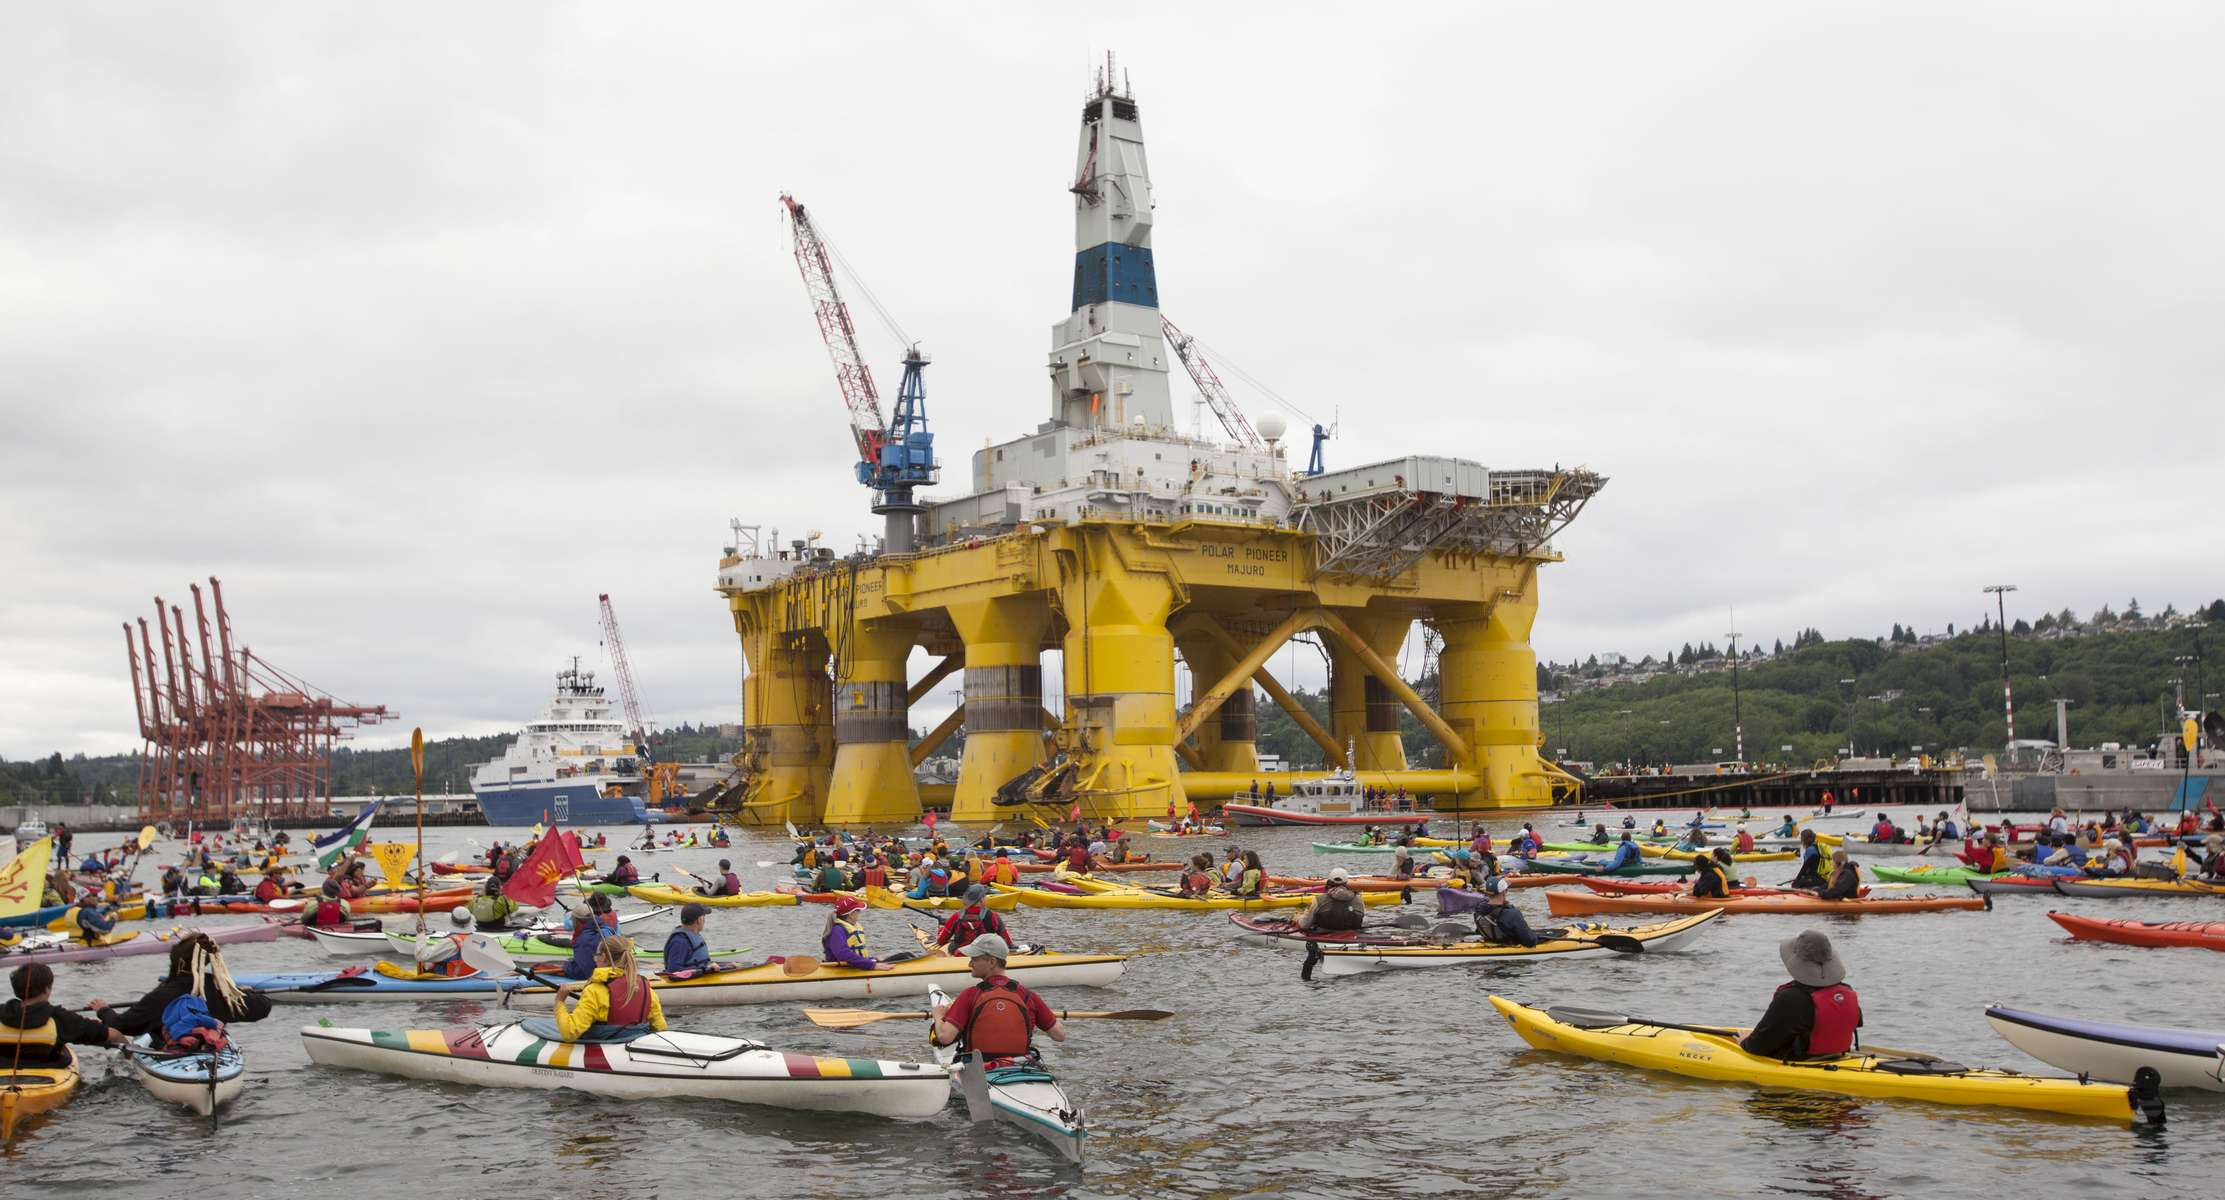 Activists in kayaks protest Saturday, May 16, 2015, near the Polar Pioneer, Shell Oil Company's  drilling rig, which is moored at the Port of Seattle's Terminal 5